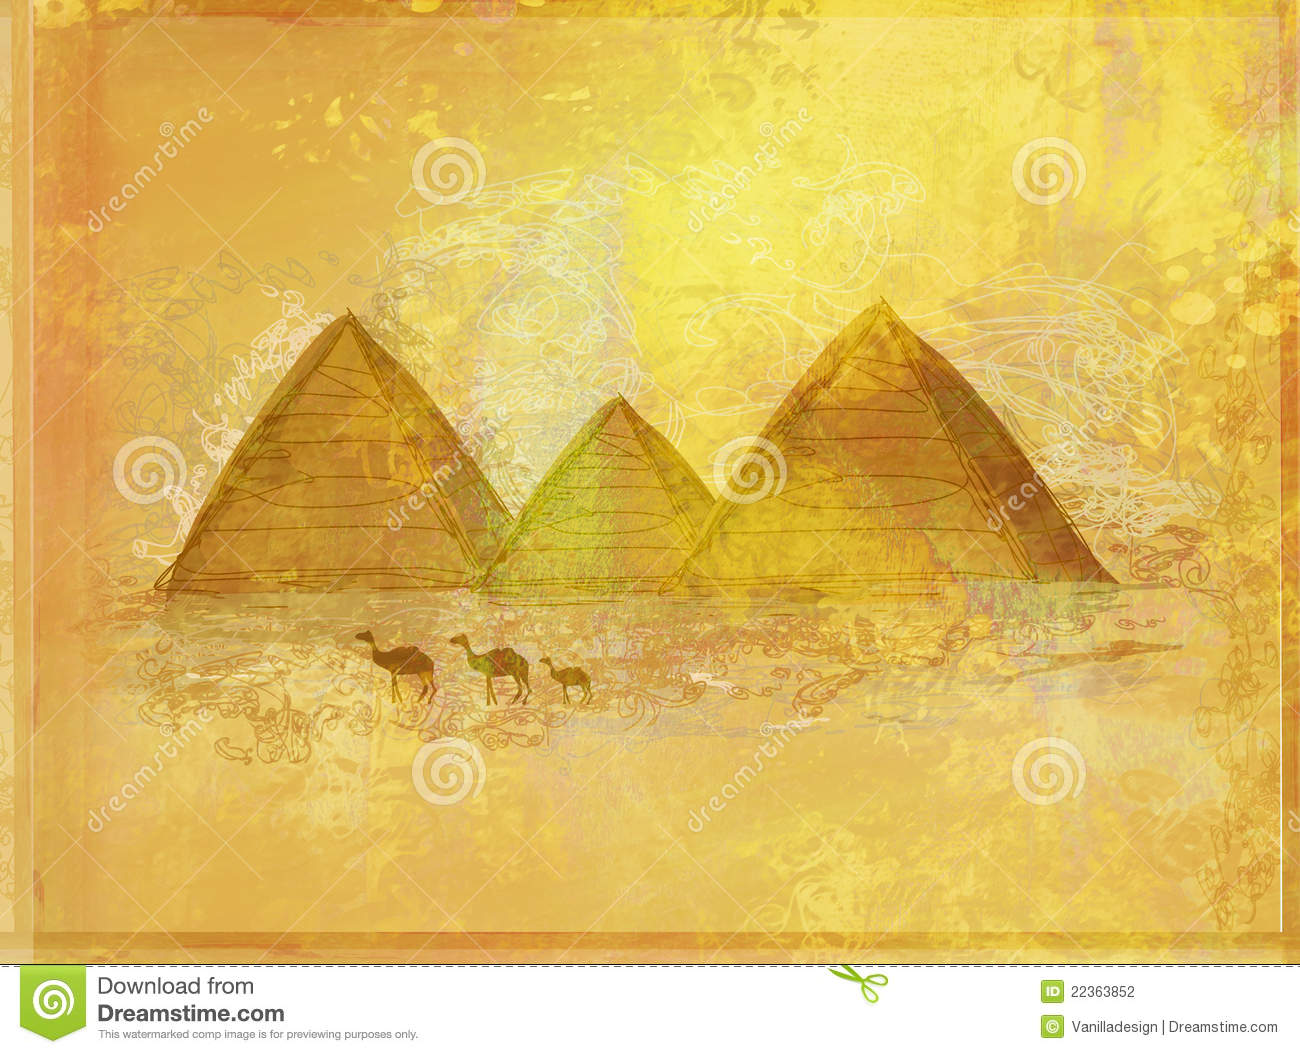 Essay: Who Built the Egyptian Pyramids